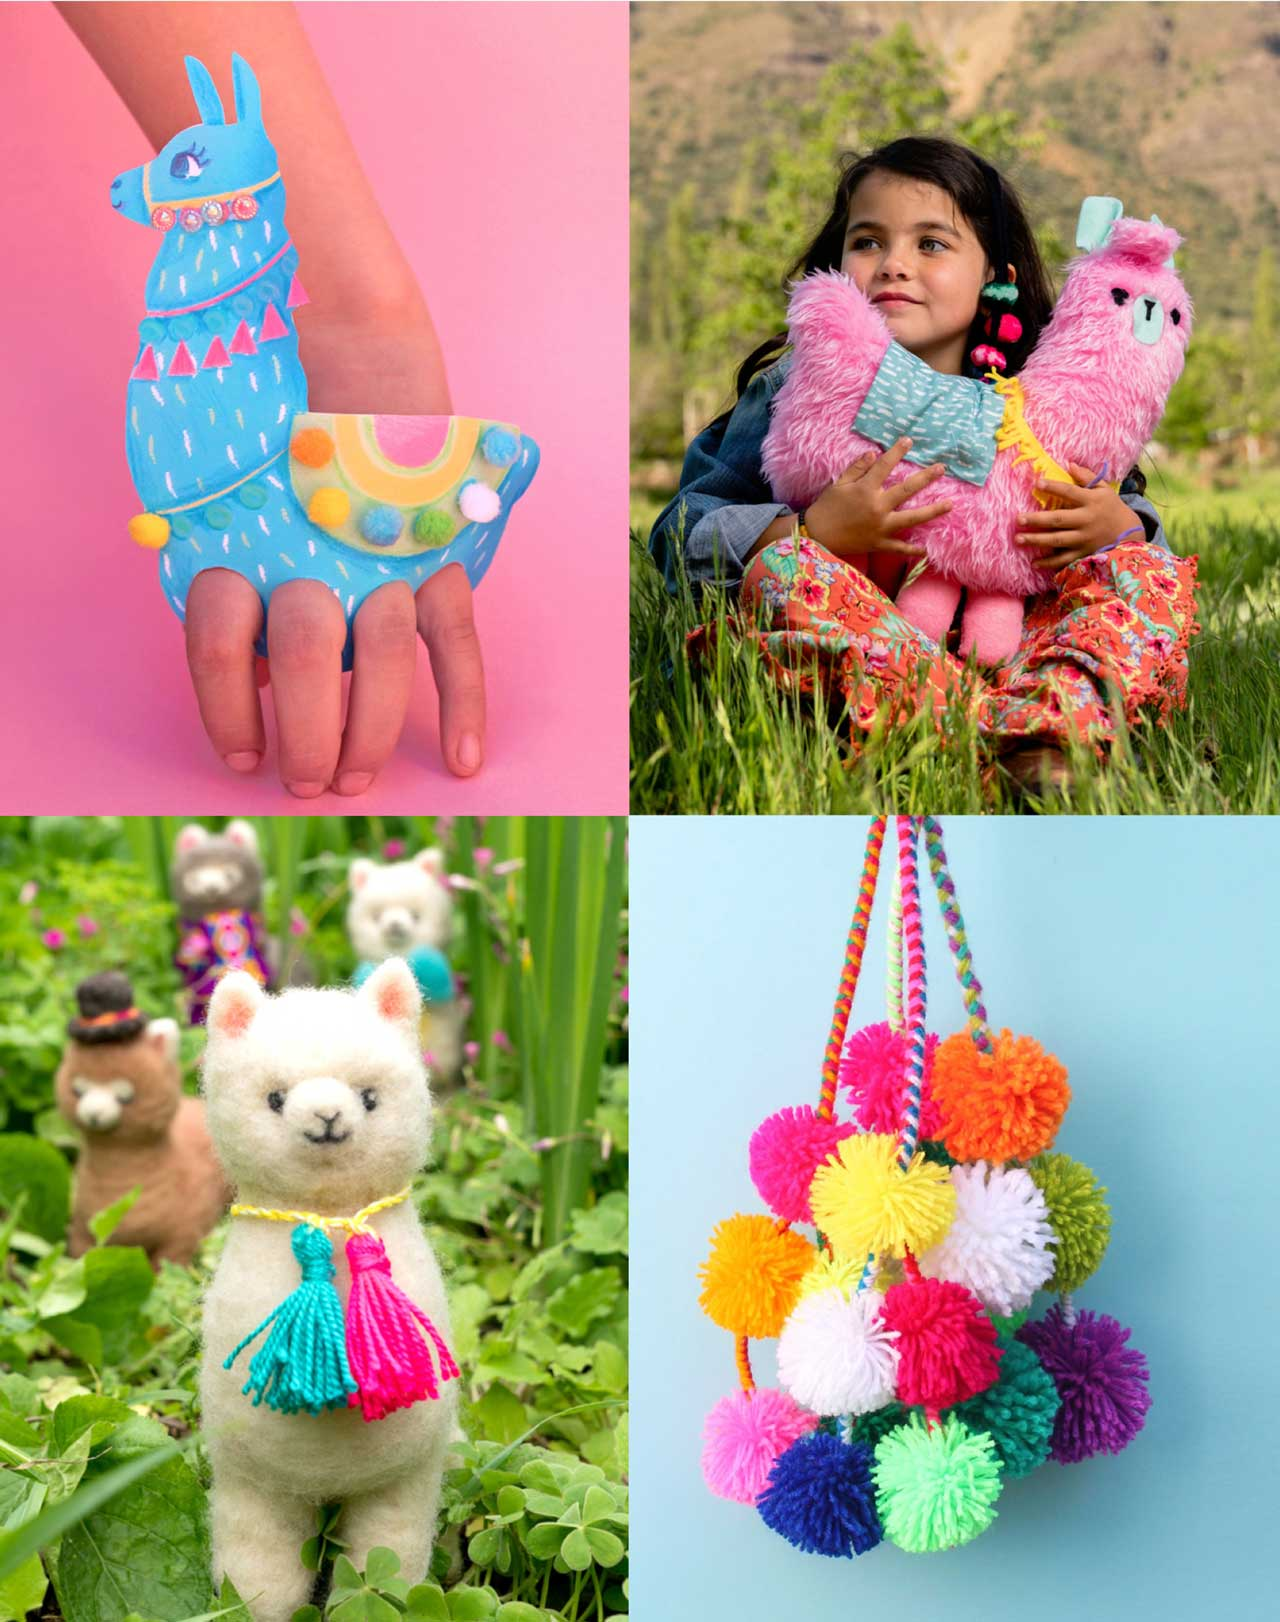 Create fantastic llama crafts with 18 crafts featured in our book 'Llama Crafts'